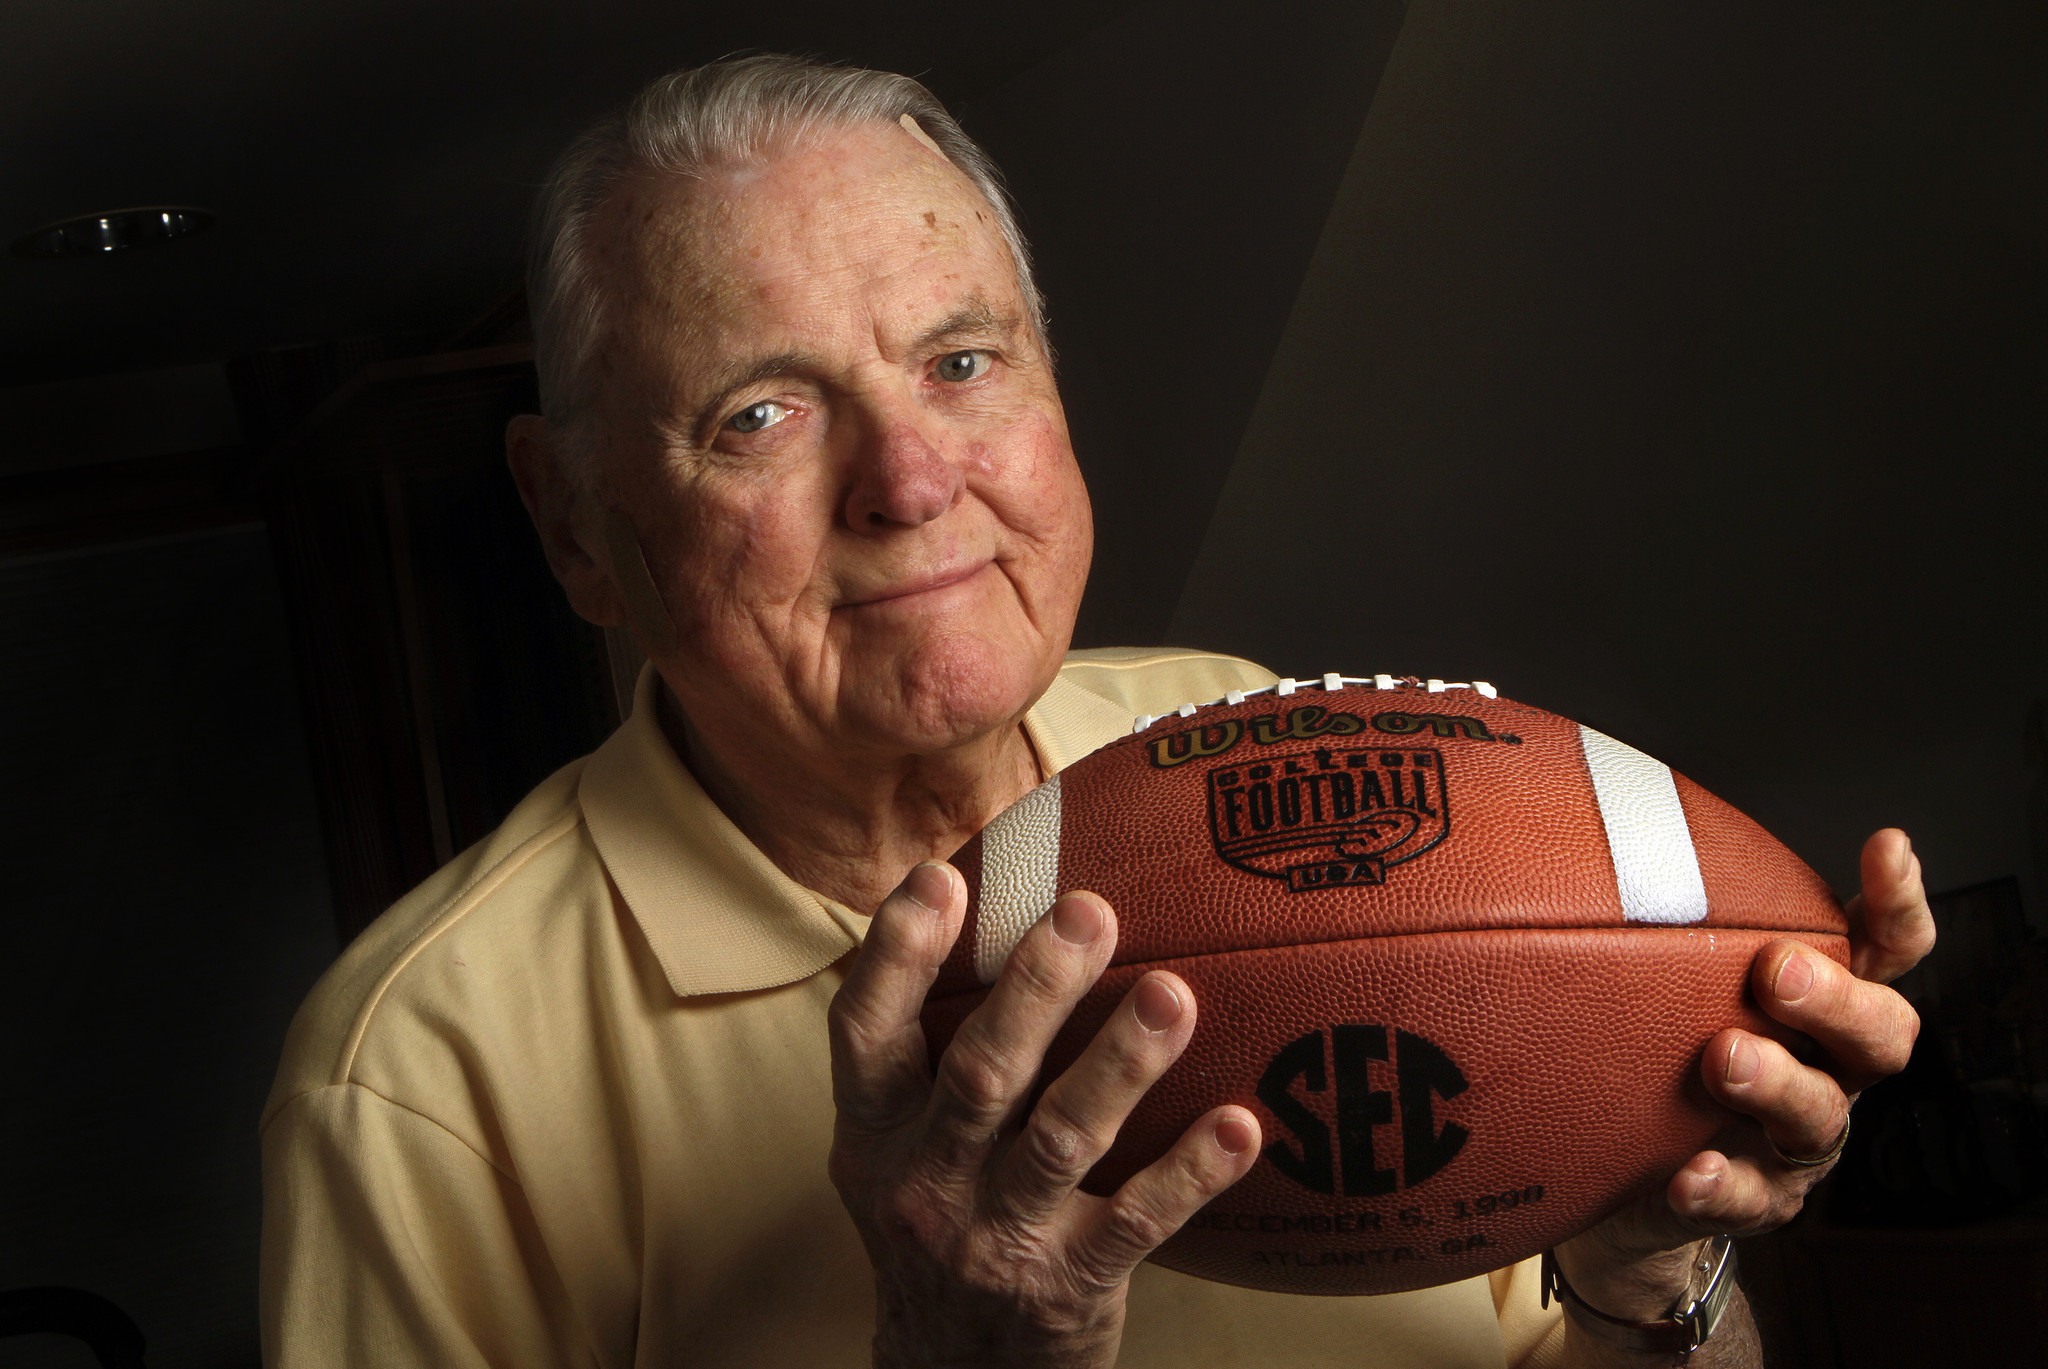 Legendary sports broadcaster Keith Jackson passed away at the age of 89 today